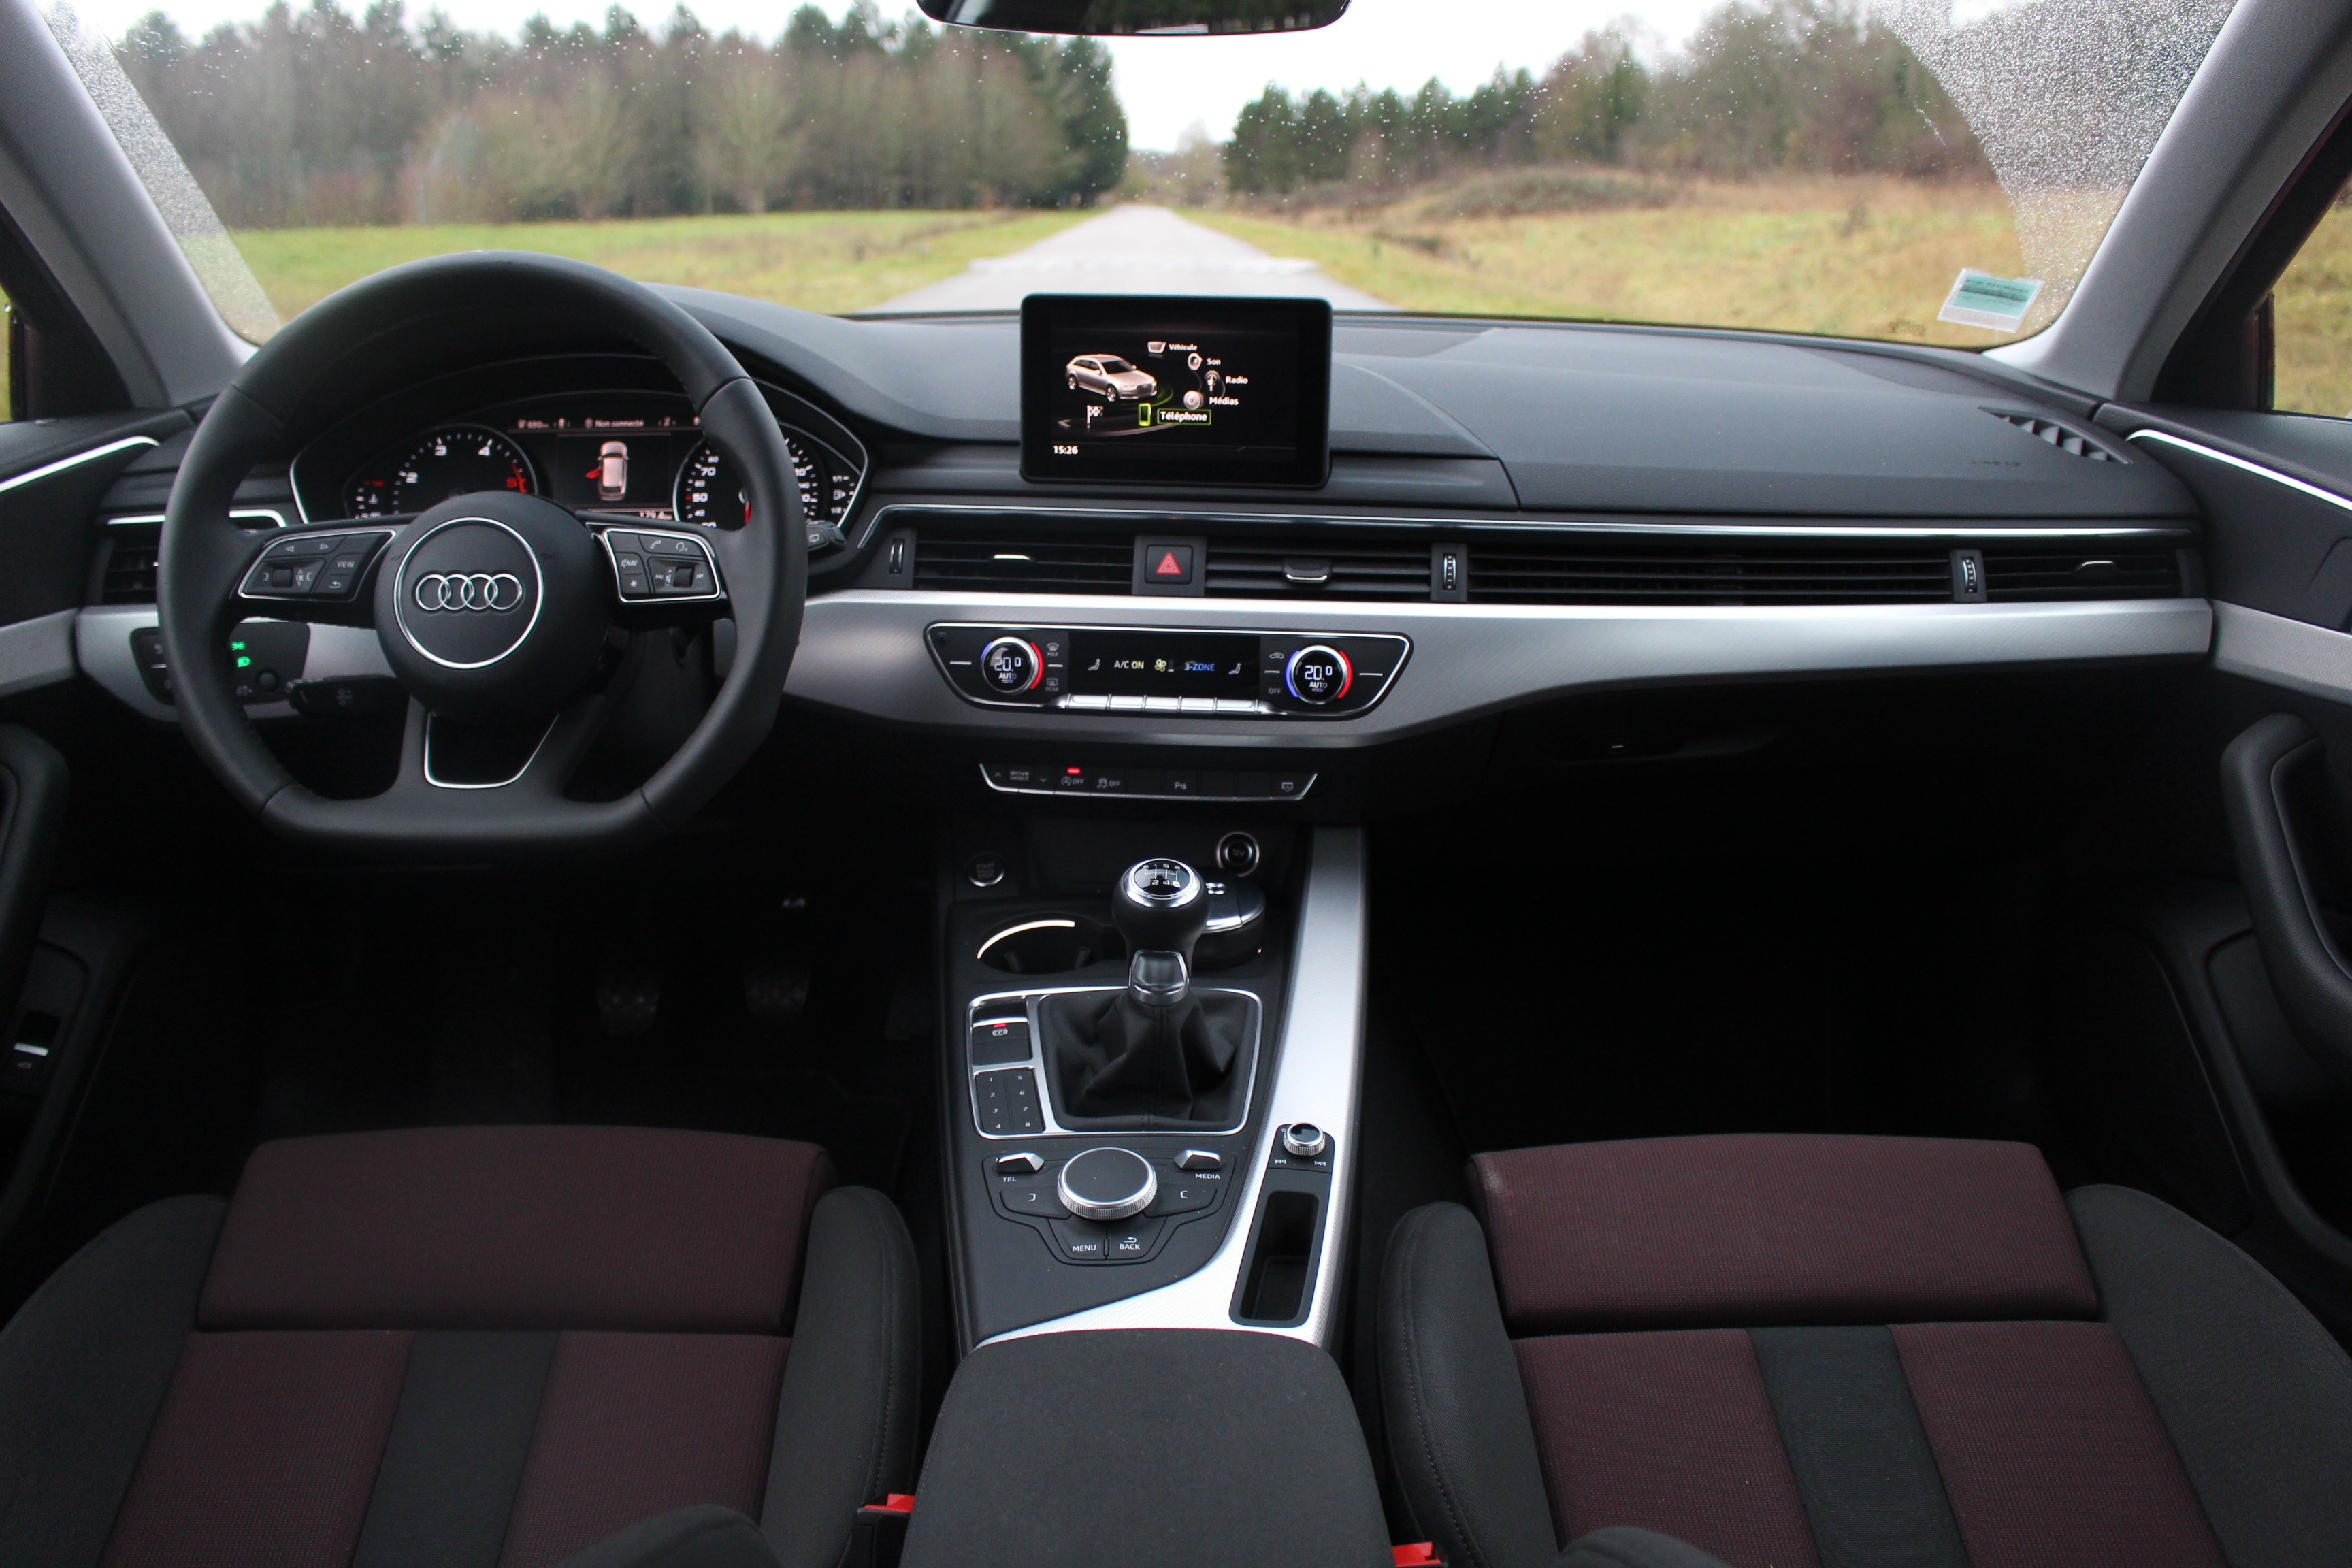 essai audi a4 avant 2 0 tdi 150 sur des rails. Black Bedroom Furniture Sets. Home Design Ideas